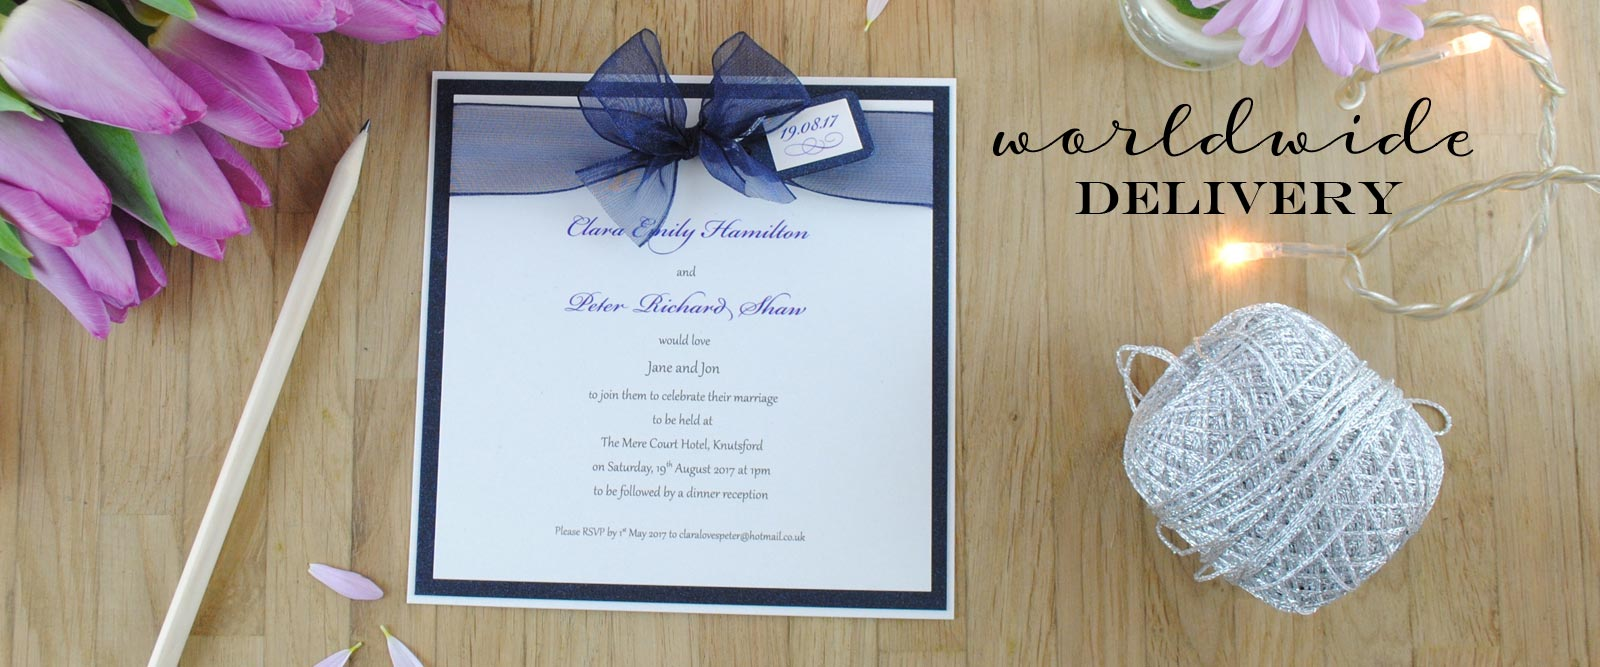 Wedding Invitation Designs Ideas